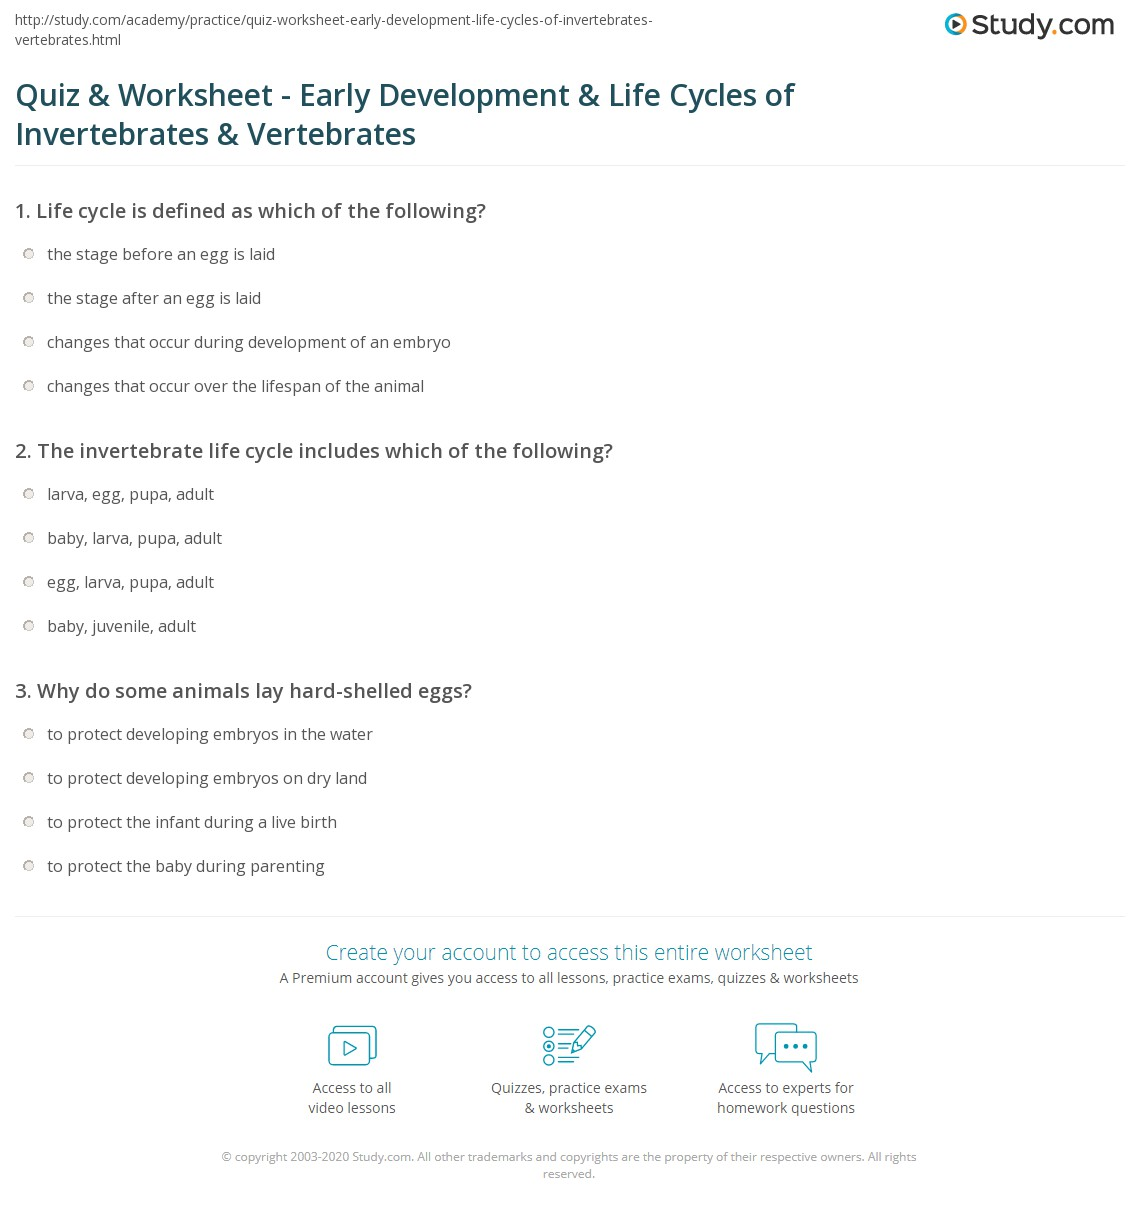 quiz worksheet early development life cycles of invertebrates vertebrates. Black Bedroom Furniture Sets. Home Design Ideas